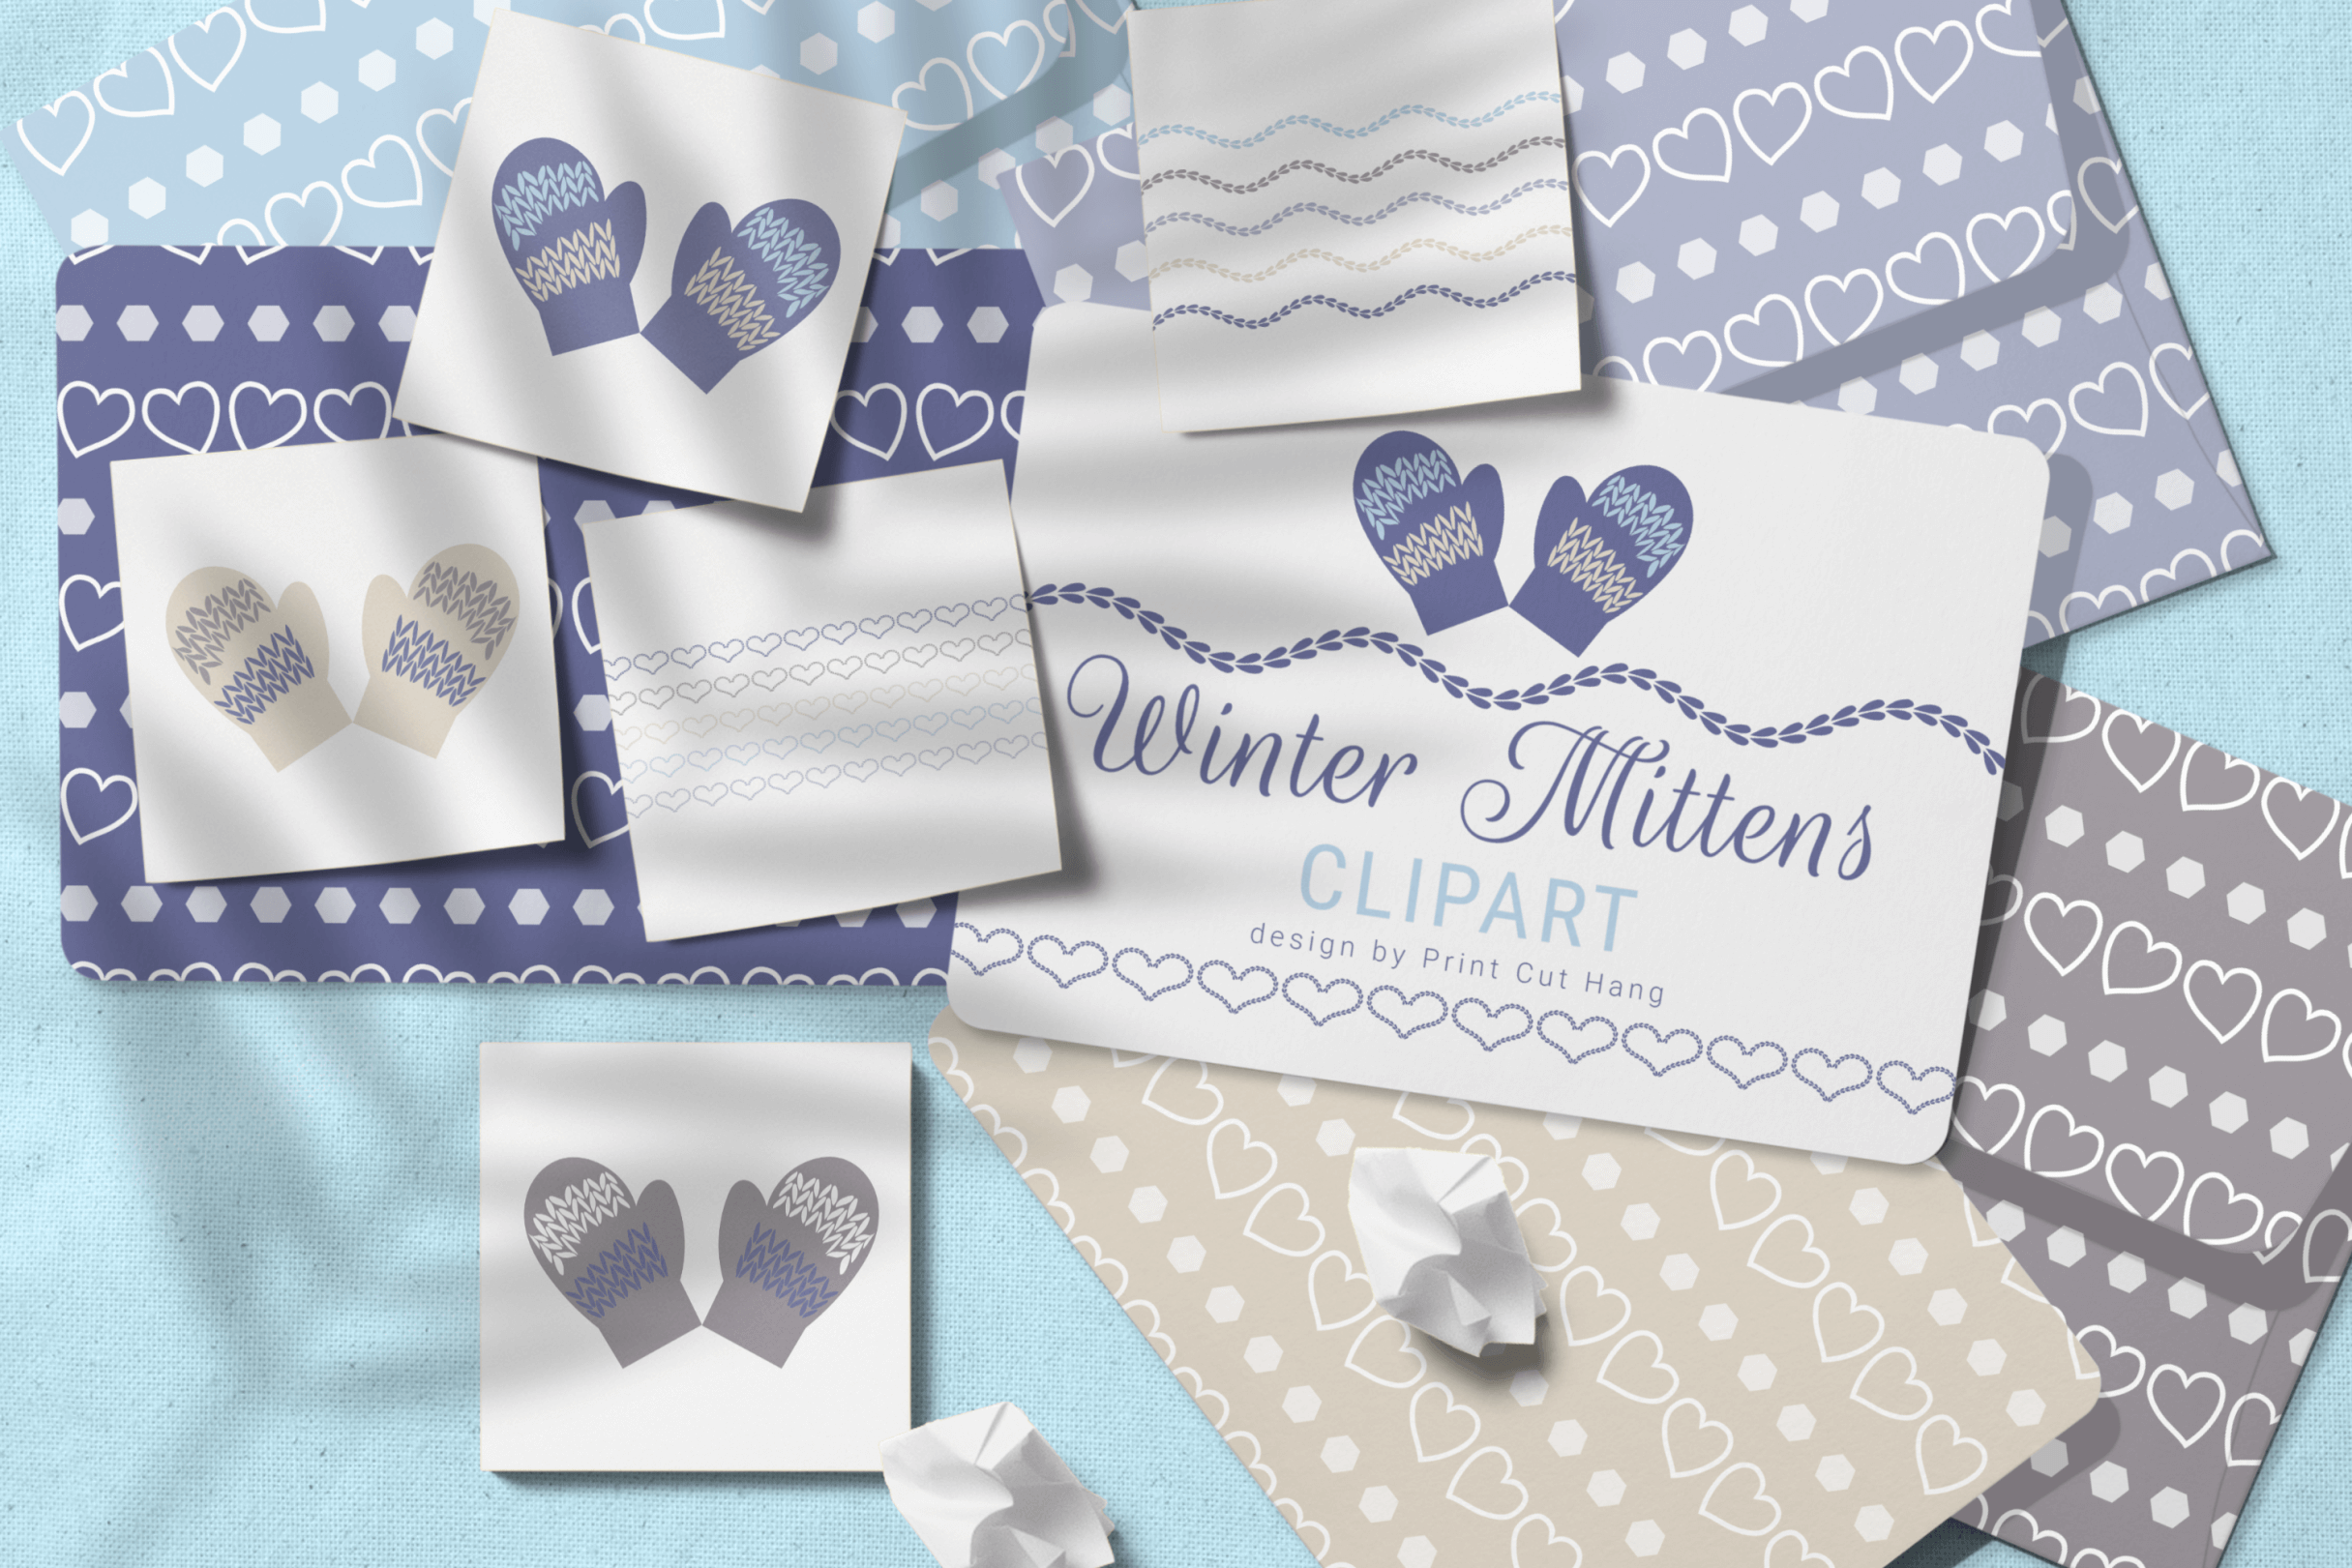 Winter Knitted Accessories Clipart & Scrapbooking Papers Set example image 2